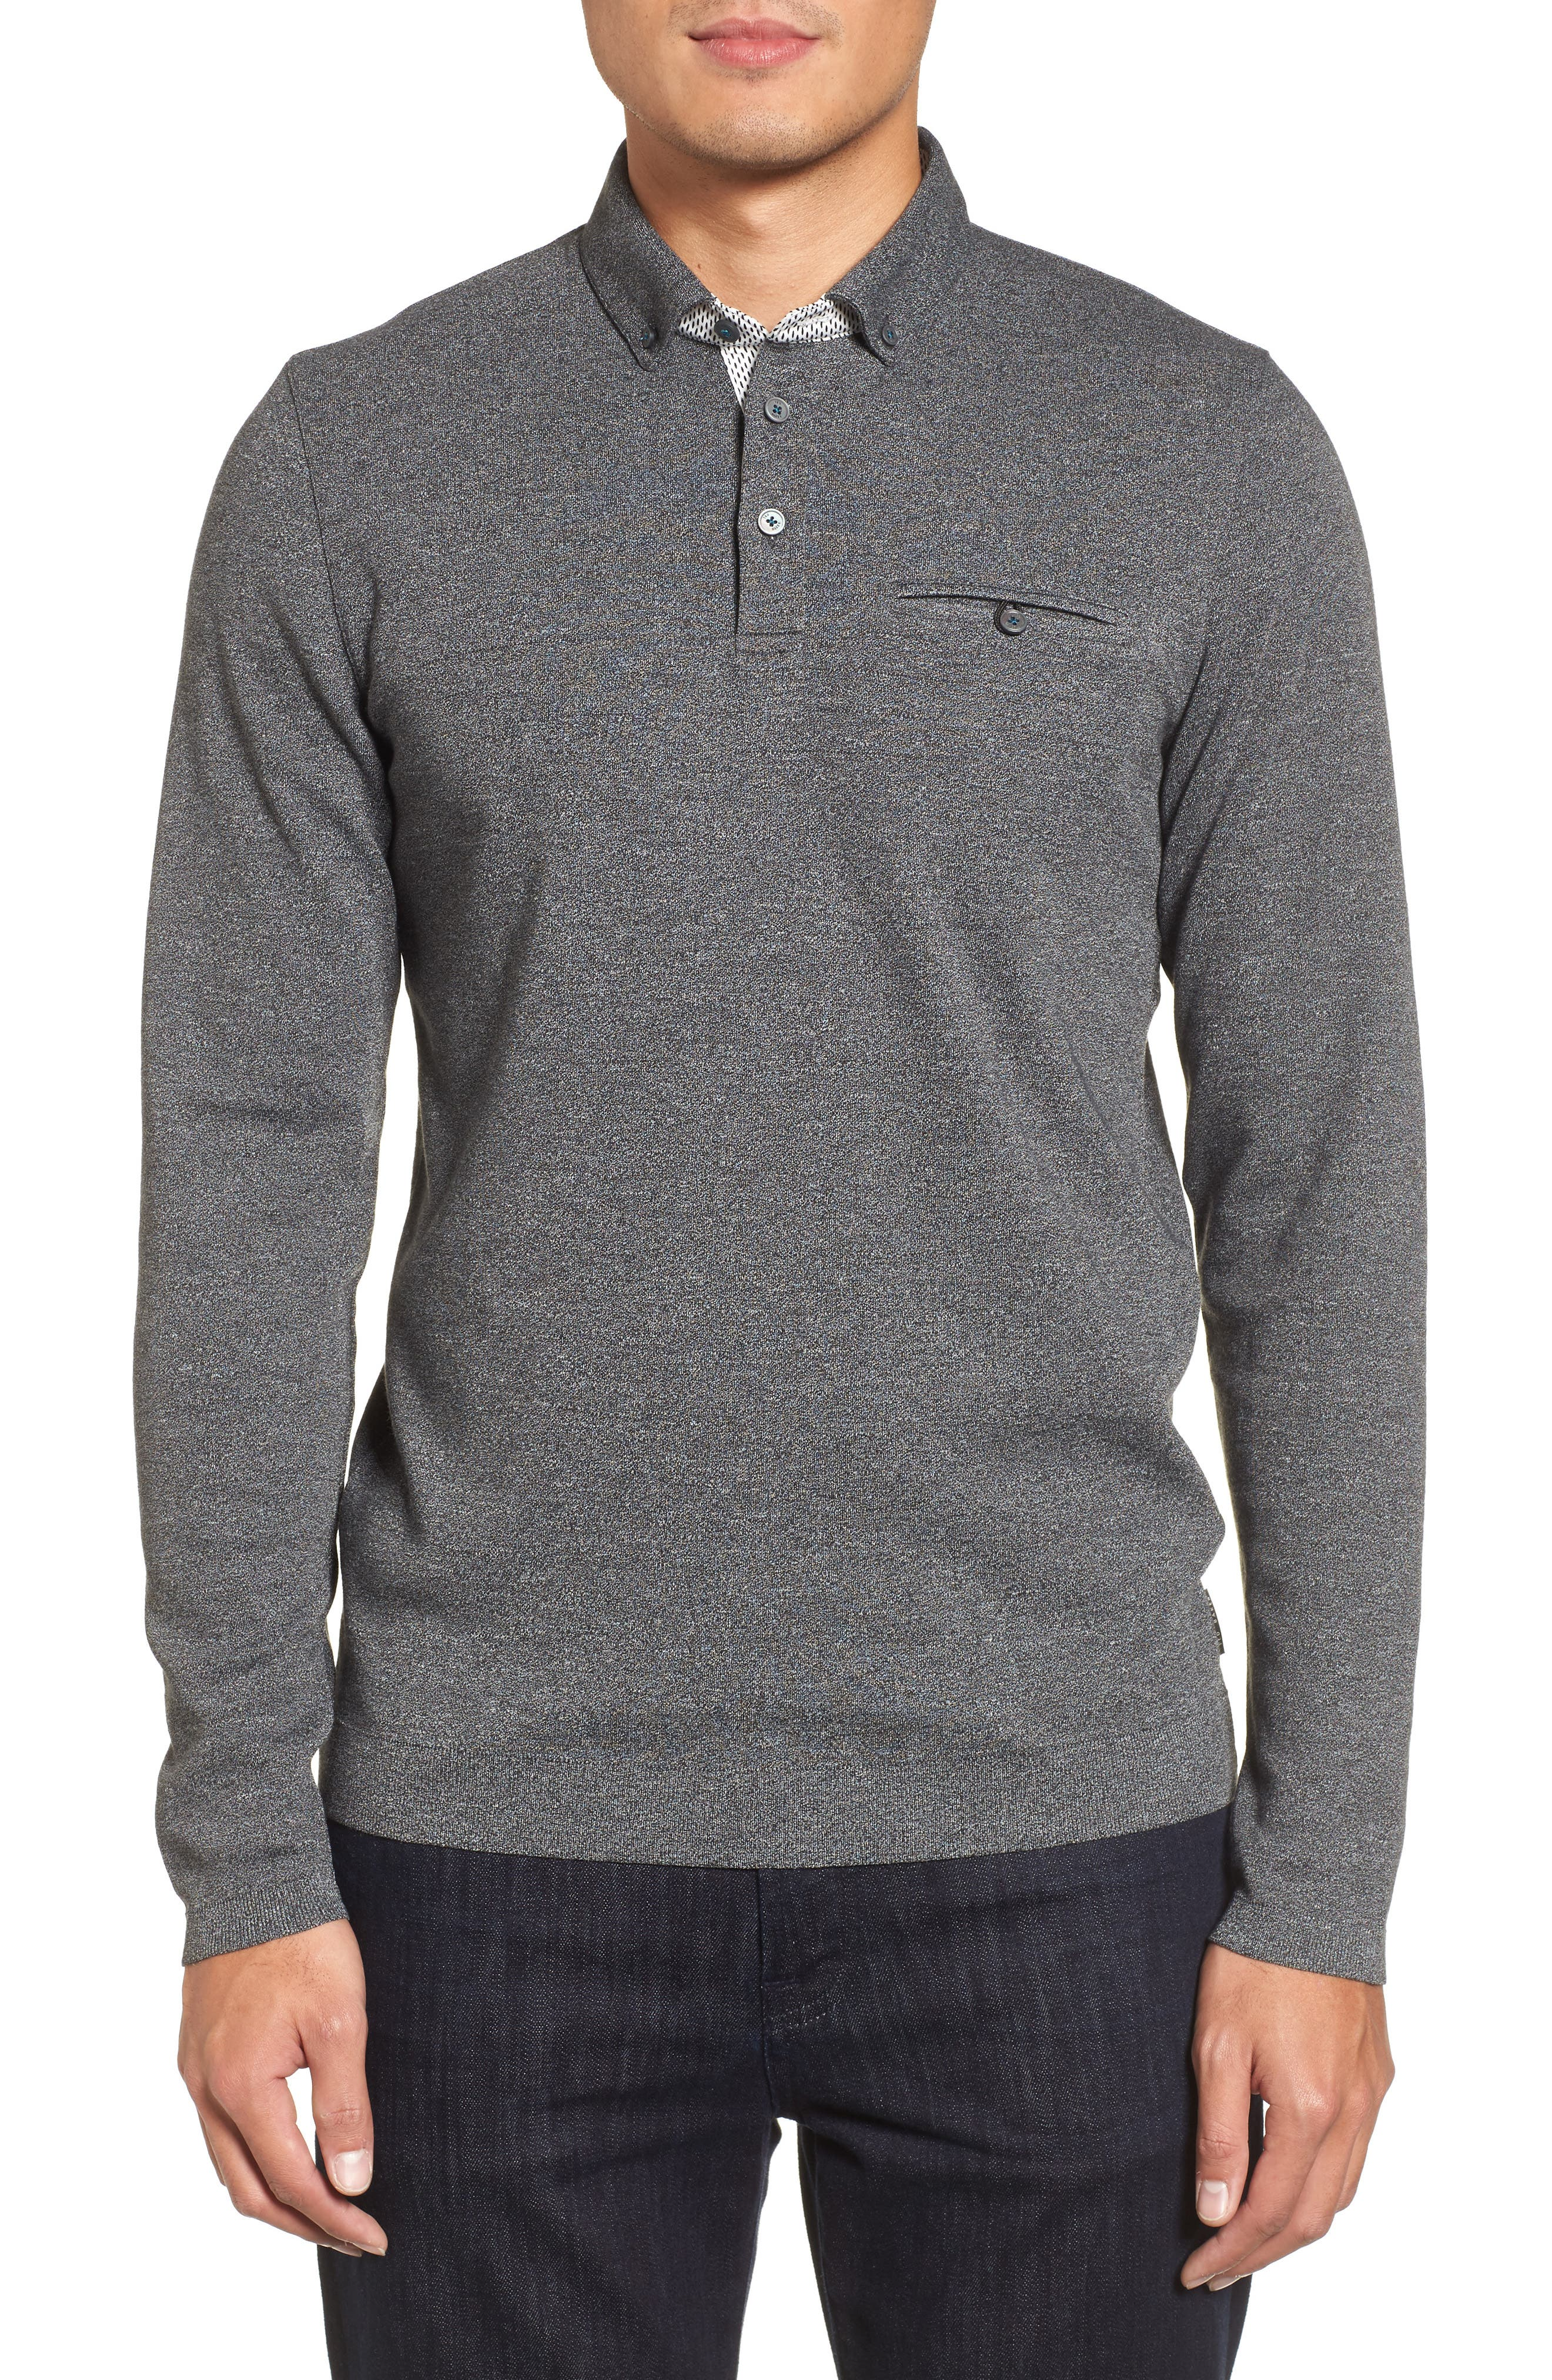 Yamway Modern Slim Fit Long Sleeve Polo,                         Main,                         color, Black